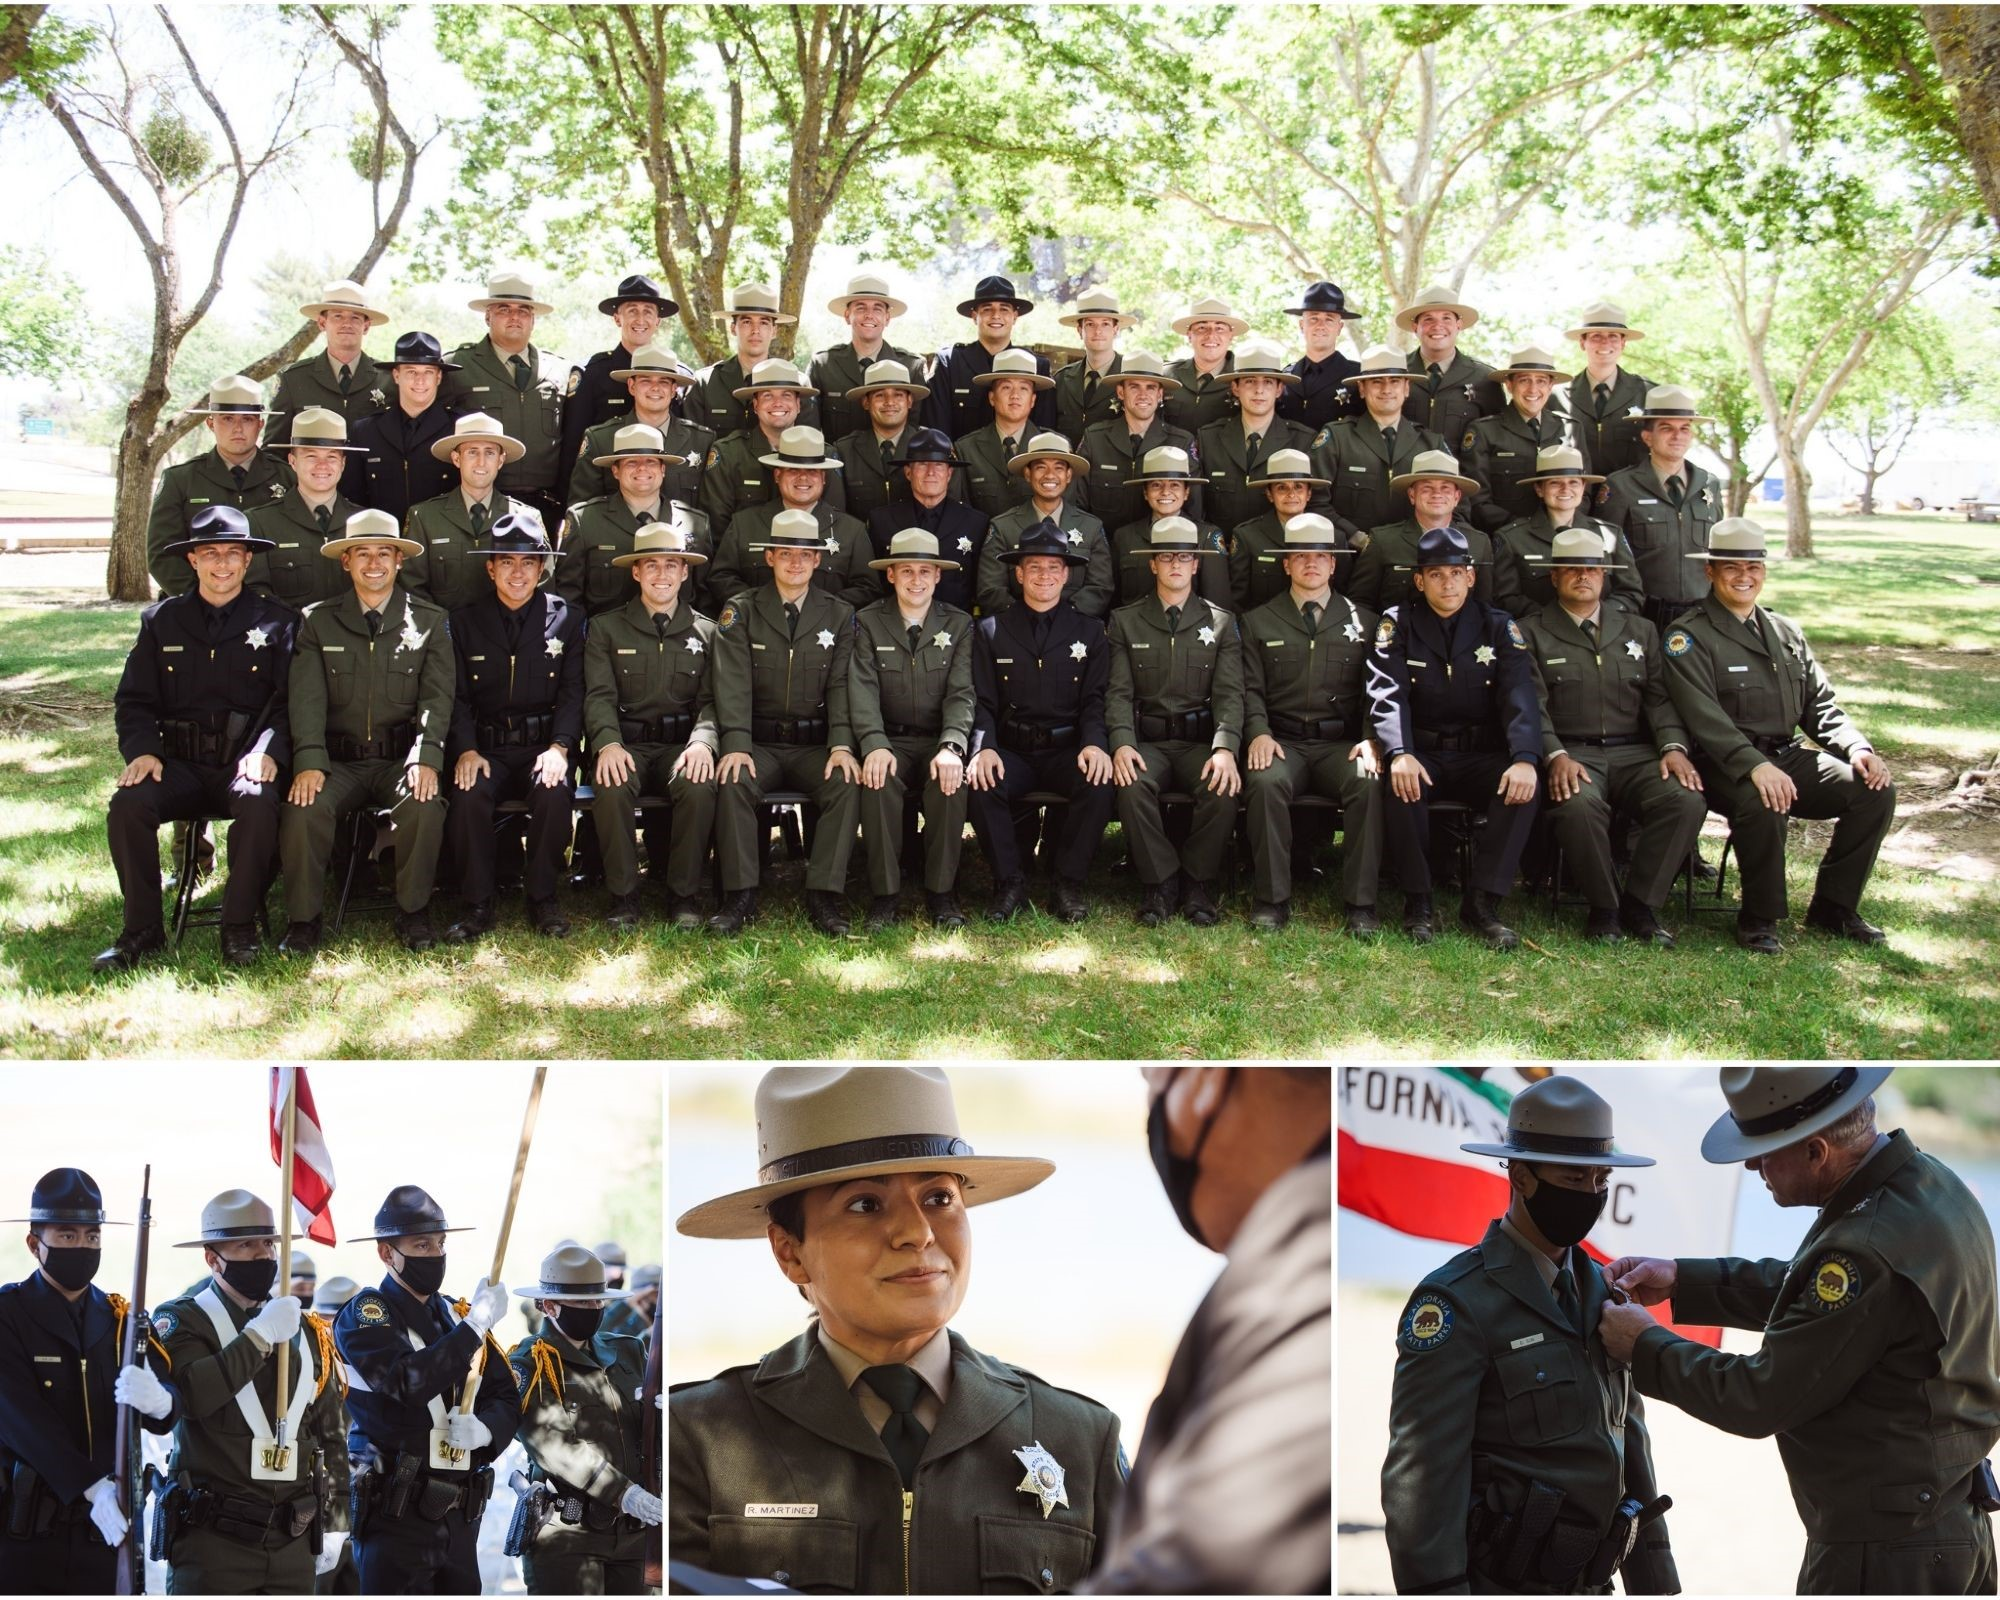 Basic Visitor Services Training (BVST) 45 Cadet Academy graduation at Lake Oroville State Recreation Area on May 19, 2021. Pictured individuals have all been vaccinated for COVID-19.  Photos from California State Parks.